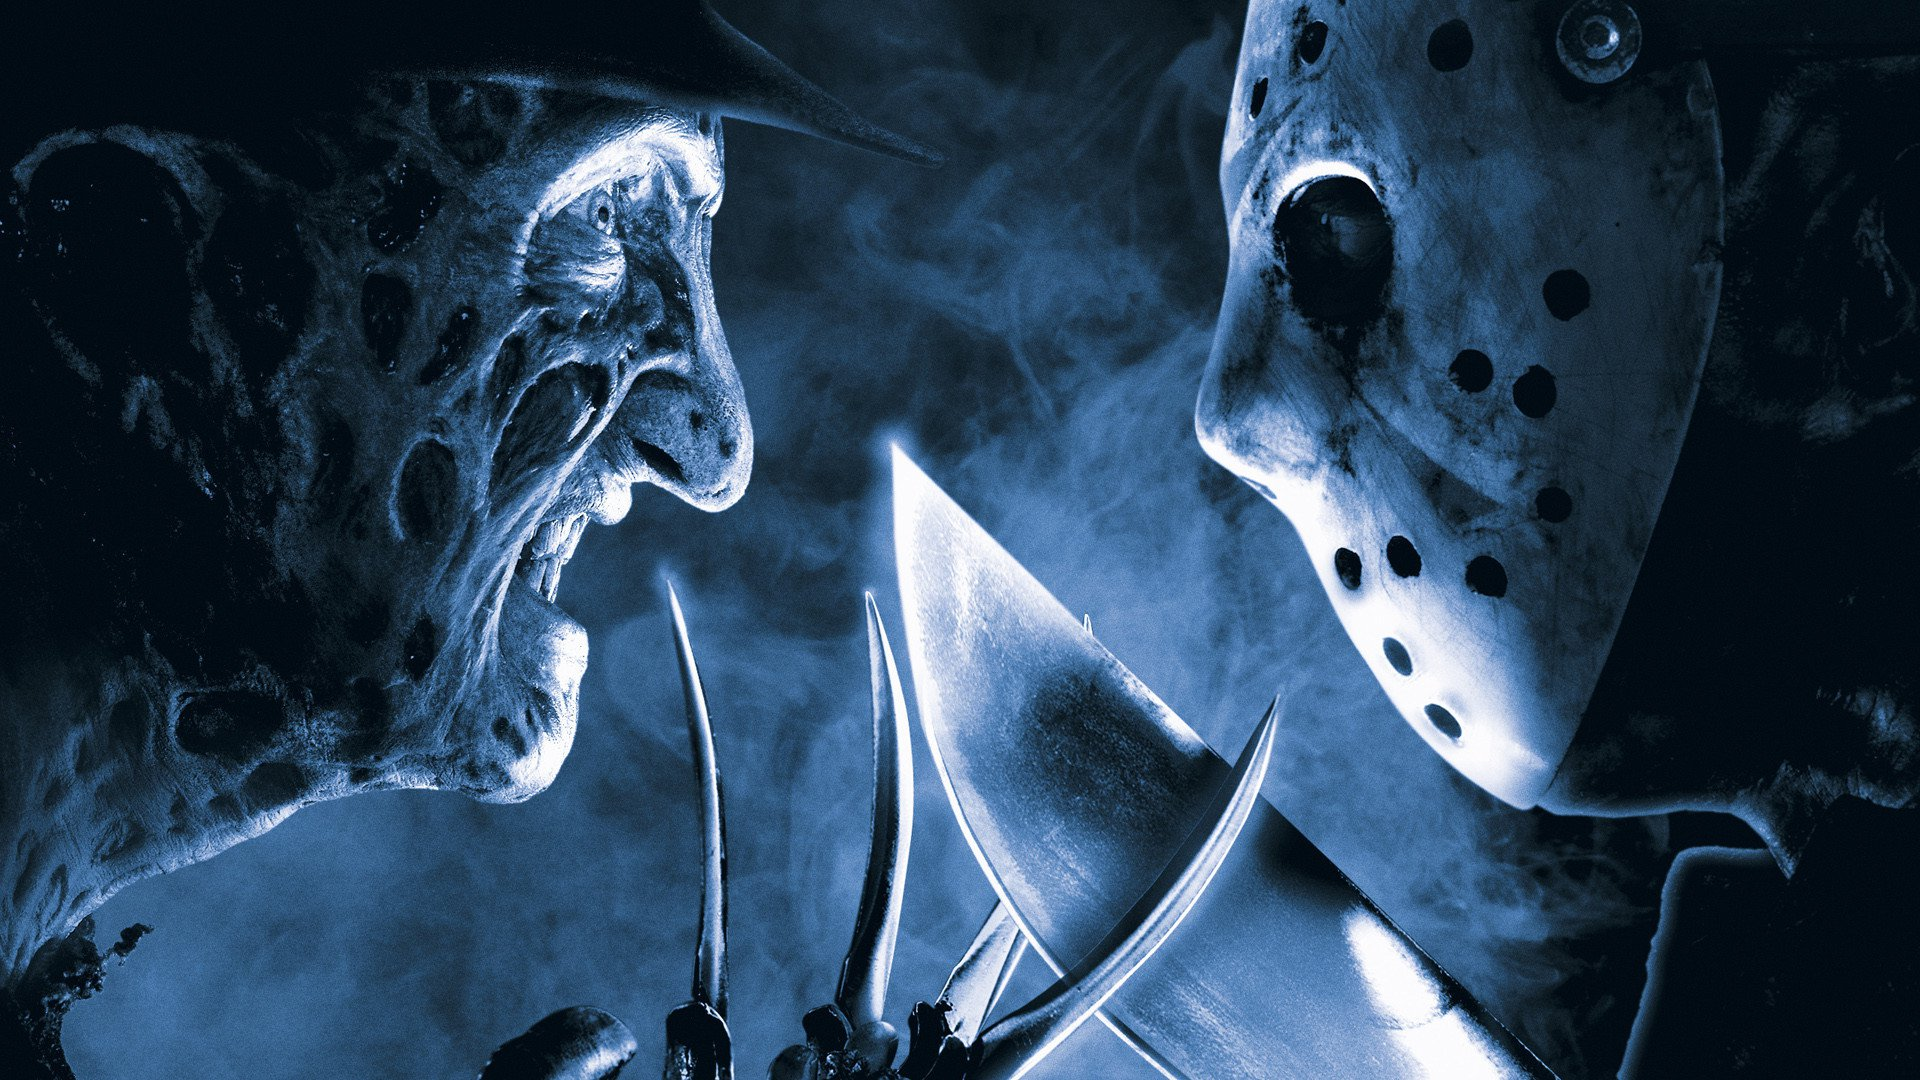 Freddy vs jason porn